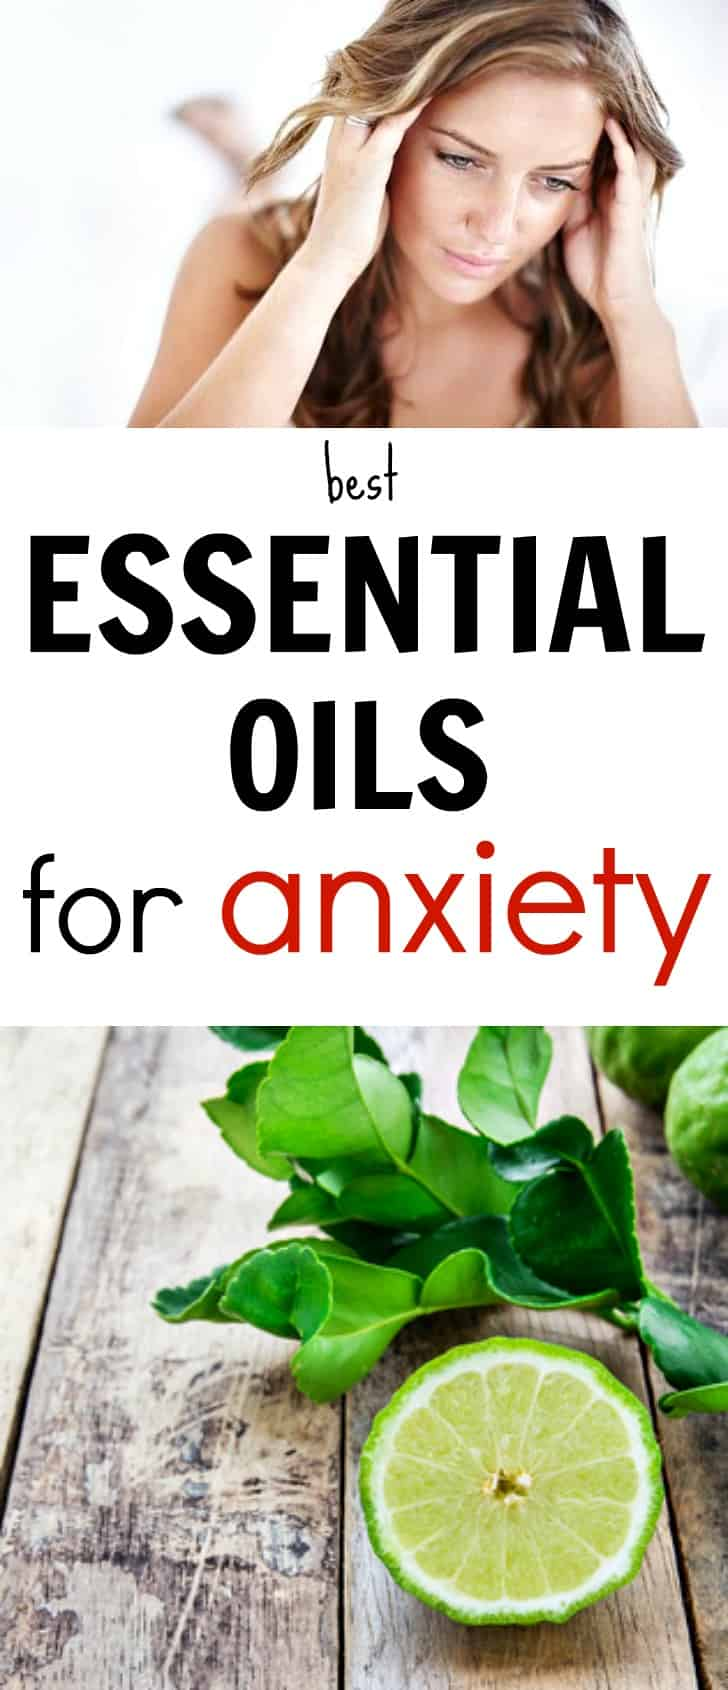 Best Essential Oils for Anxiety: How to Treat Stress with Essential Oils